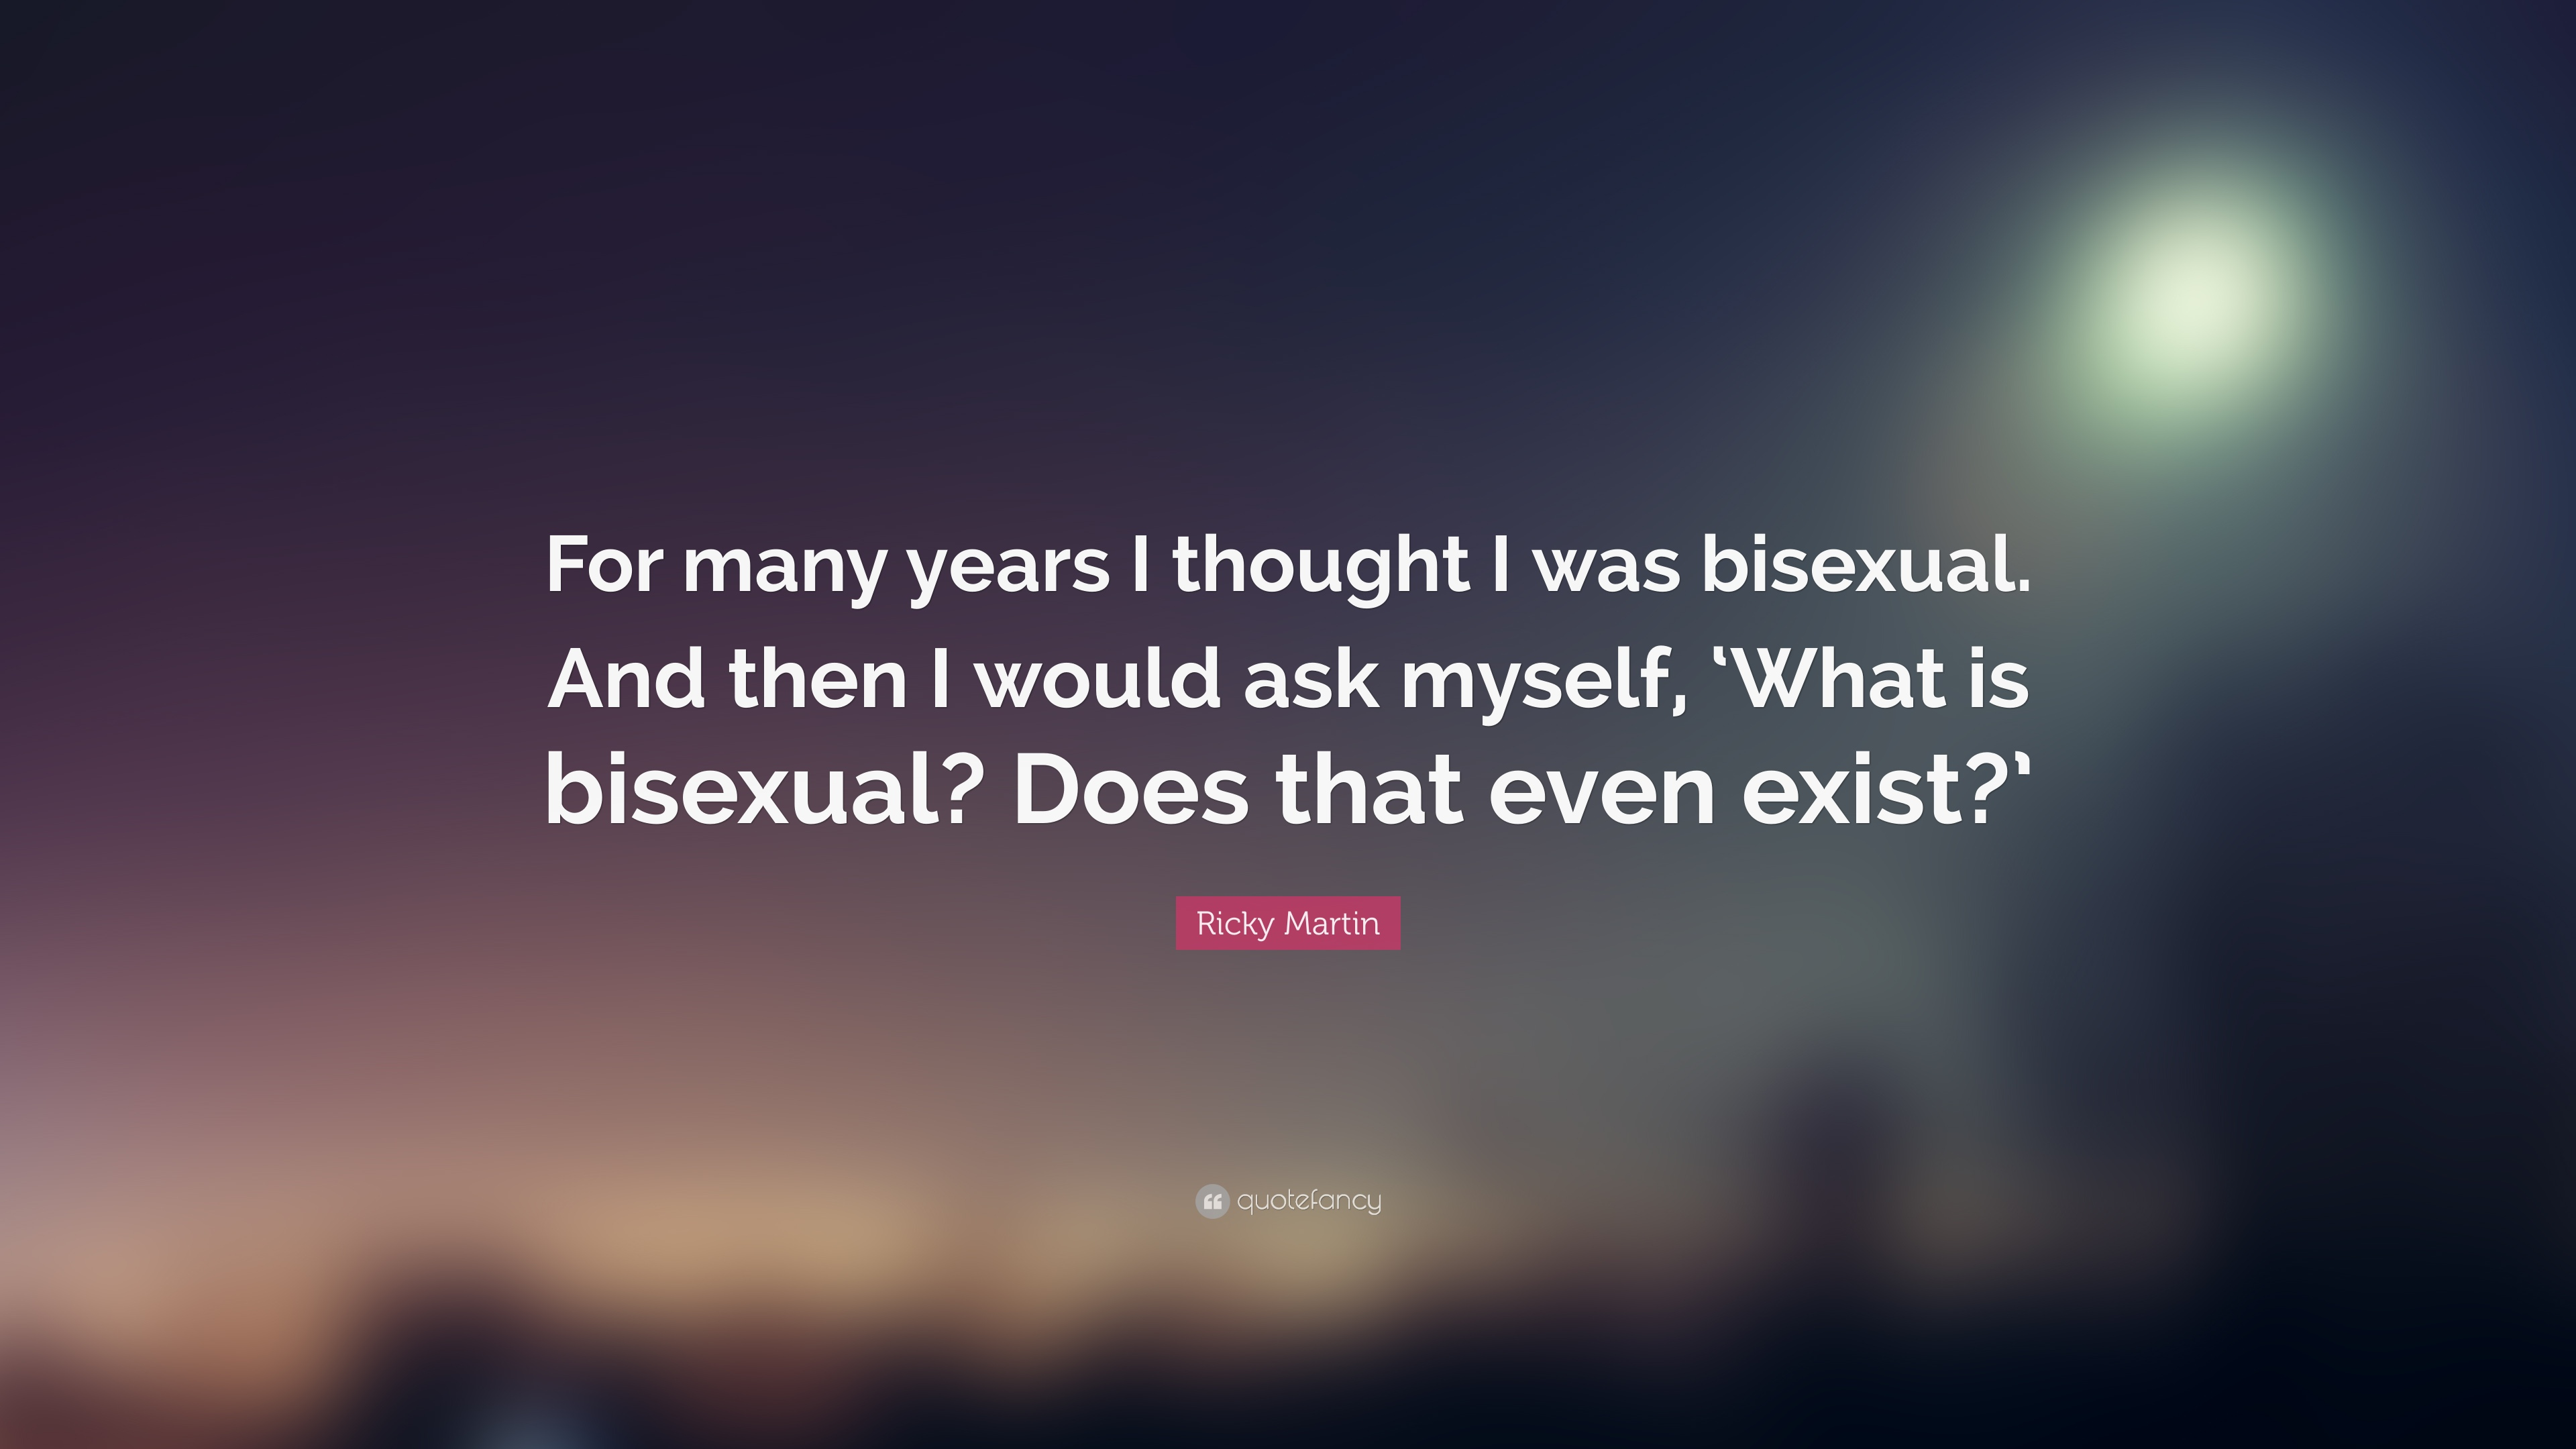 Thought i was bisexual